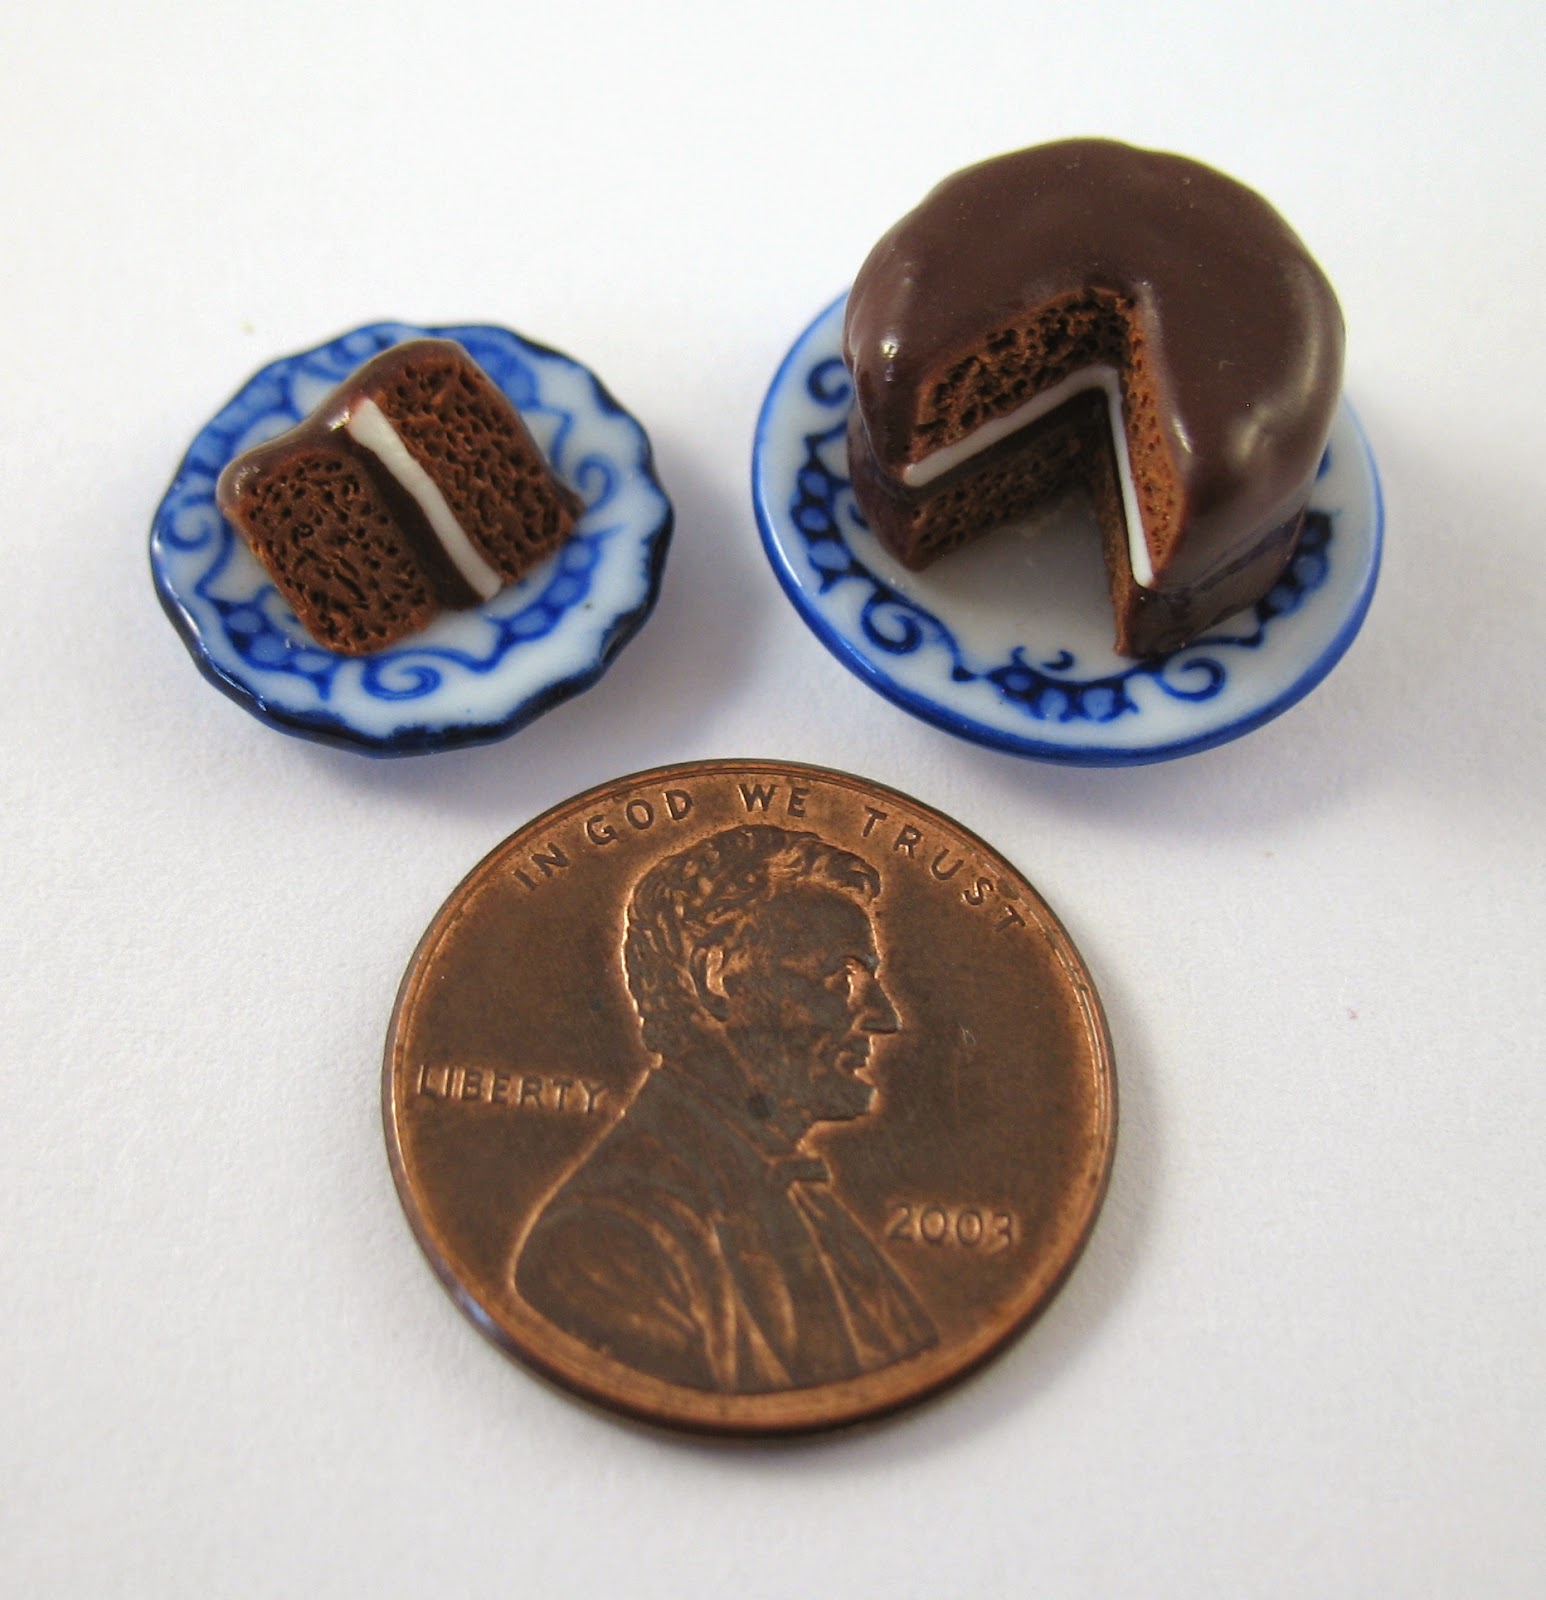 https://www.etsy.com/listing/206847697/dollhouse-miniature-food-chocolate-cake?ref=shop_home_active_1